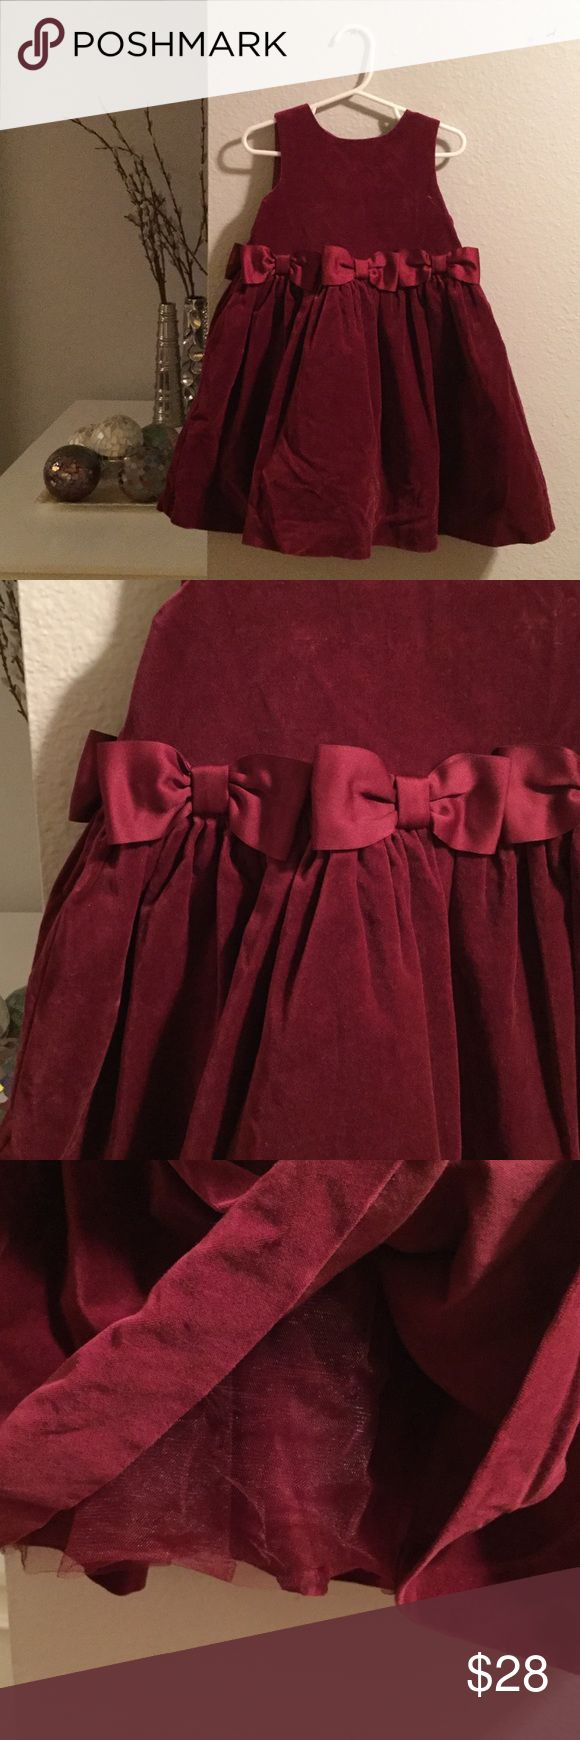 Janie and Jack velvet dress Janie and Jack gorgeous wine-colored velvet sleeveless dress with tonal bows at the waist (continue around the back of the dress) and tulle underneath to create fullness. Buttons up the back. Excellent condition - like new except for perhaps a few small wrinkles that need to be ironed out. Worn once to a wedding. Janie and Jack Dresses Formal